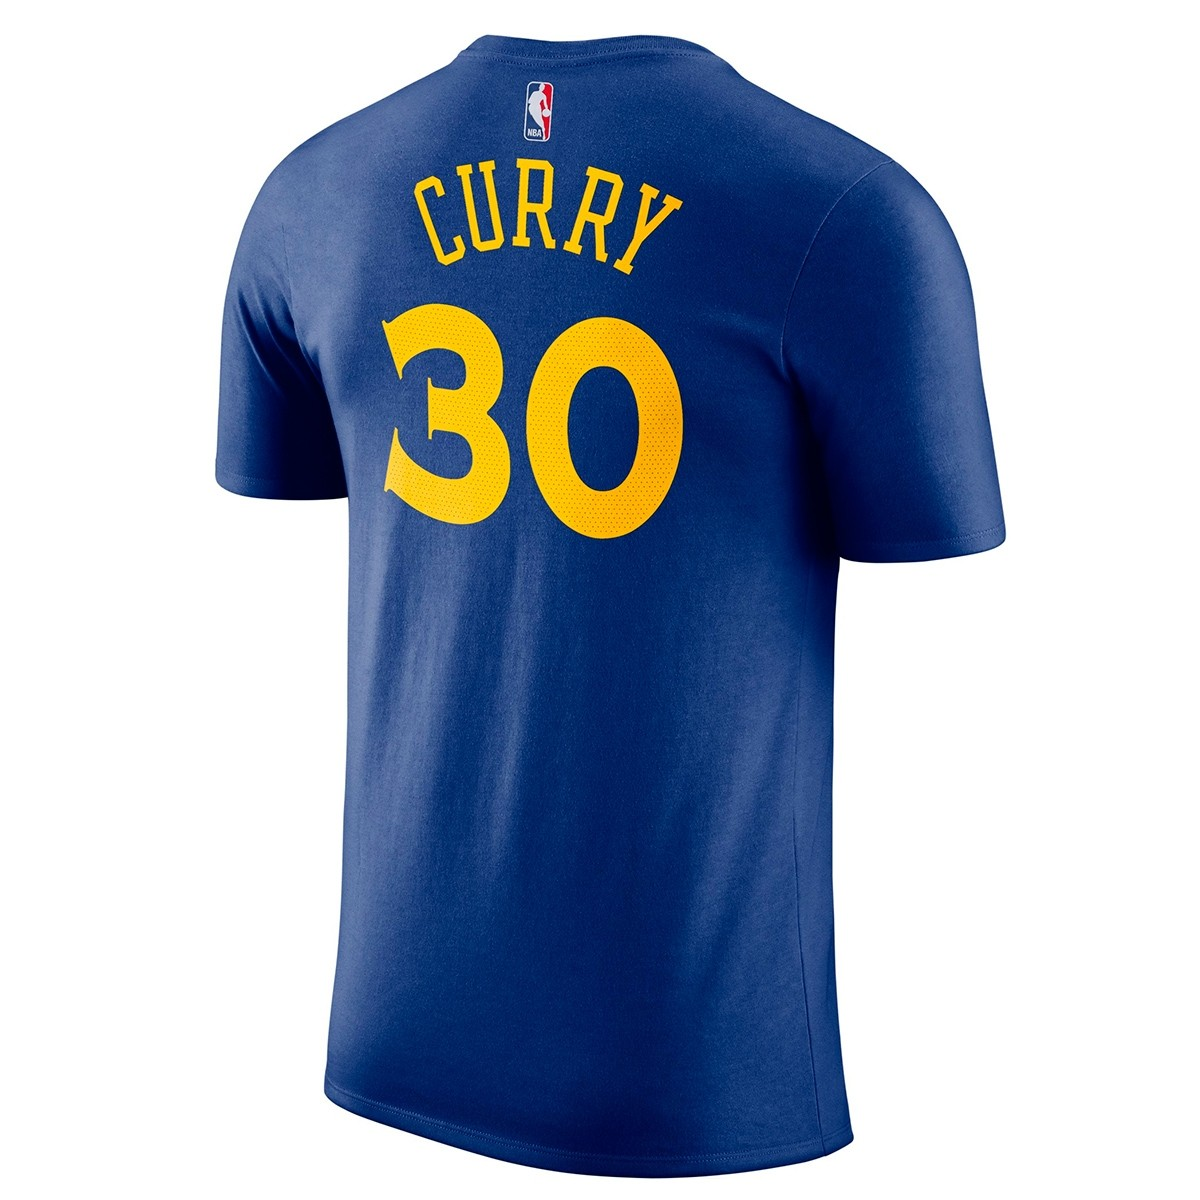 Junior NBA Warriors Nick Name Tee Curry 'Icon Edition' EZ2B711F1-GSSCI